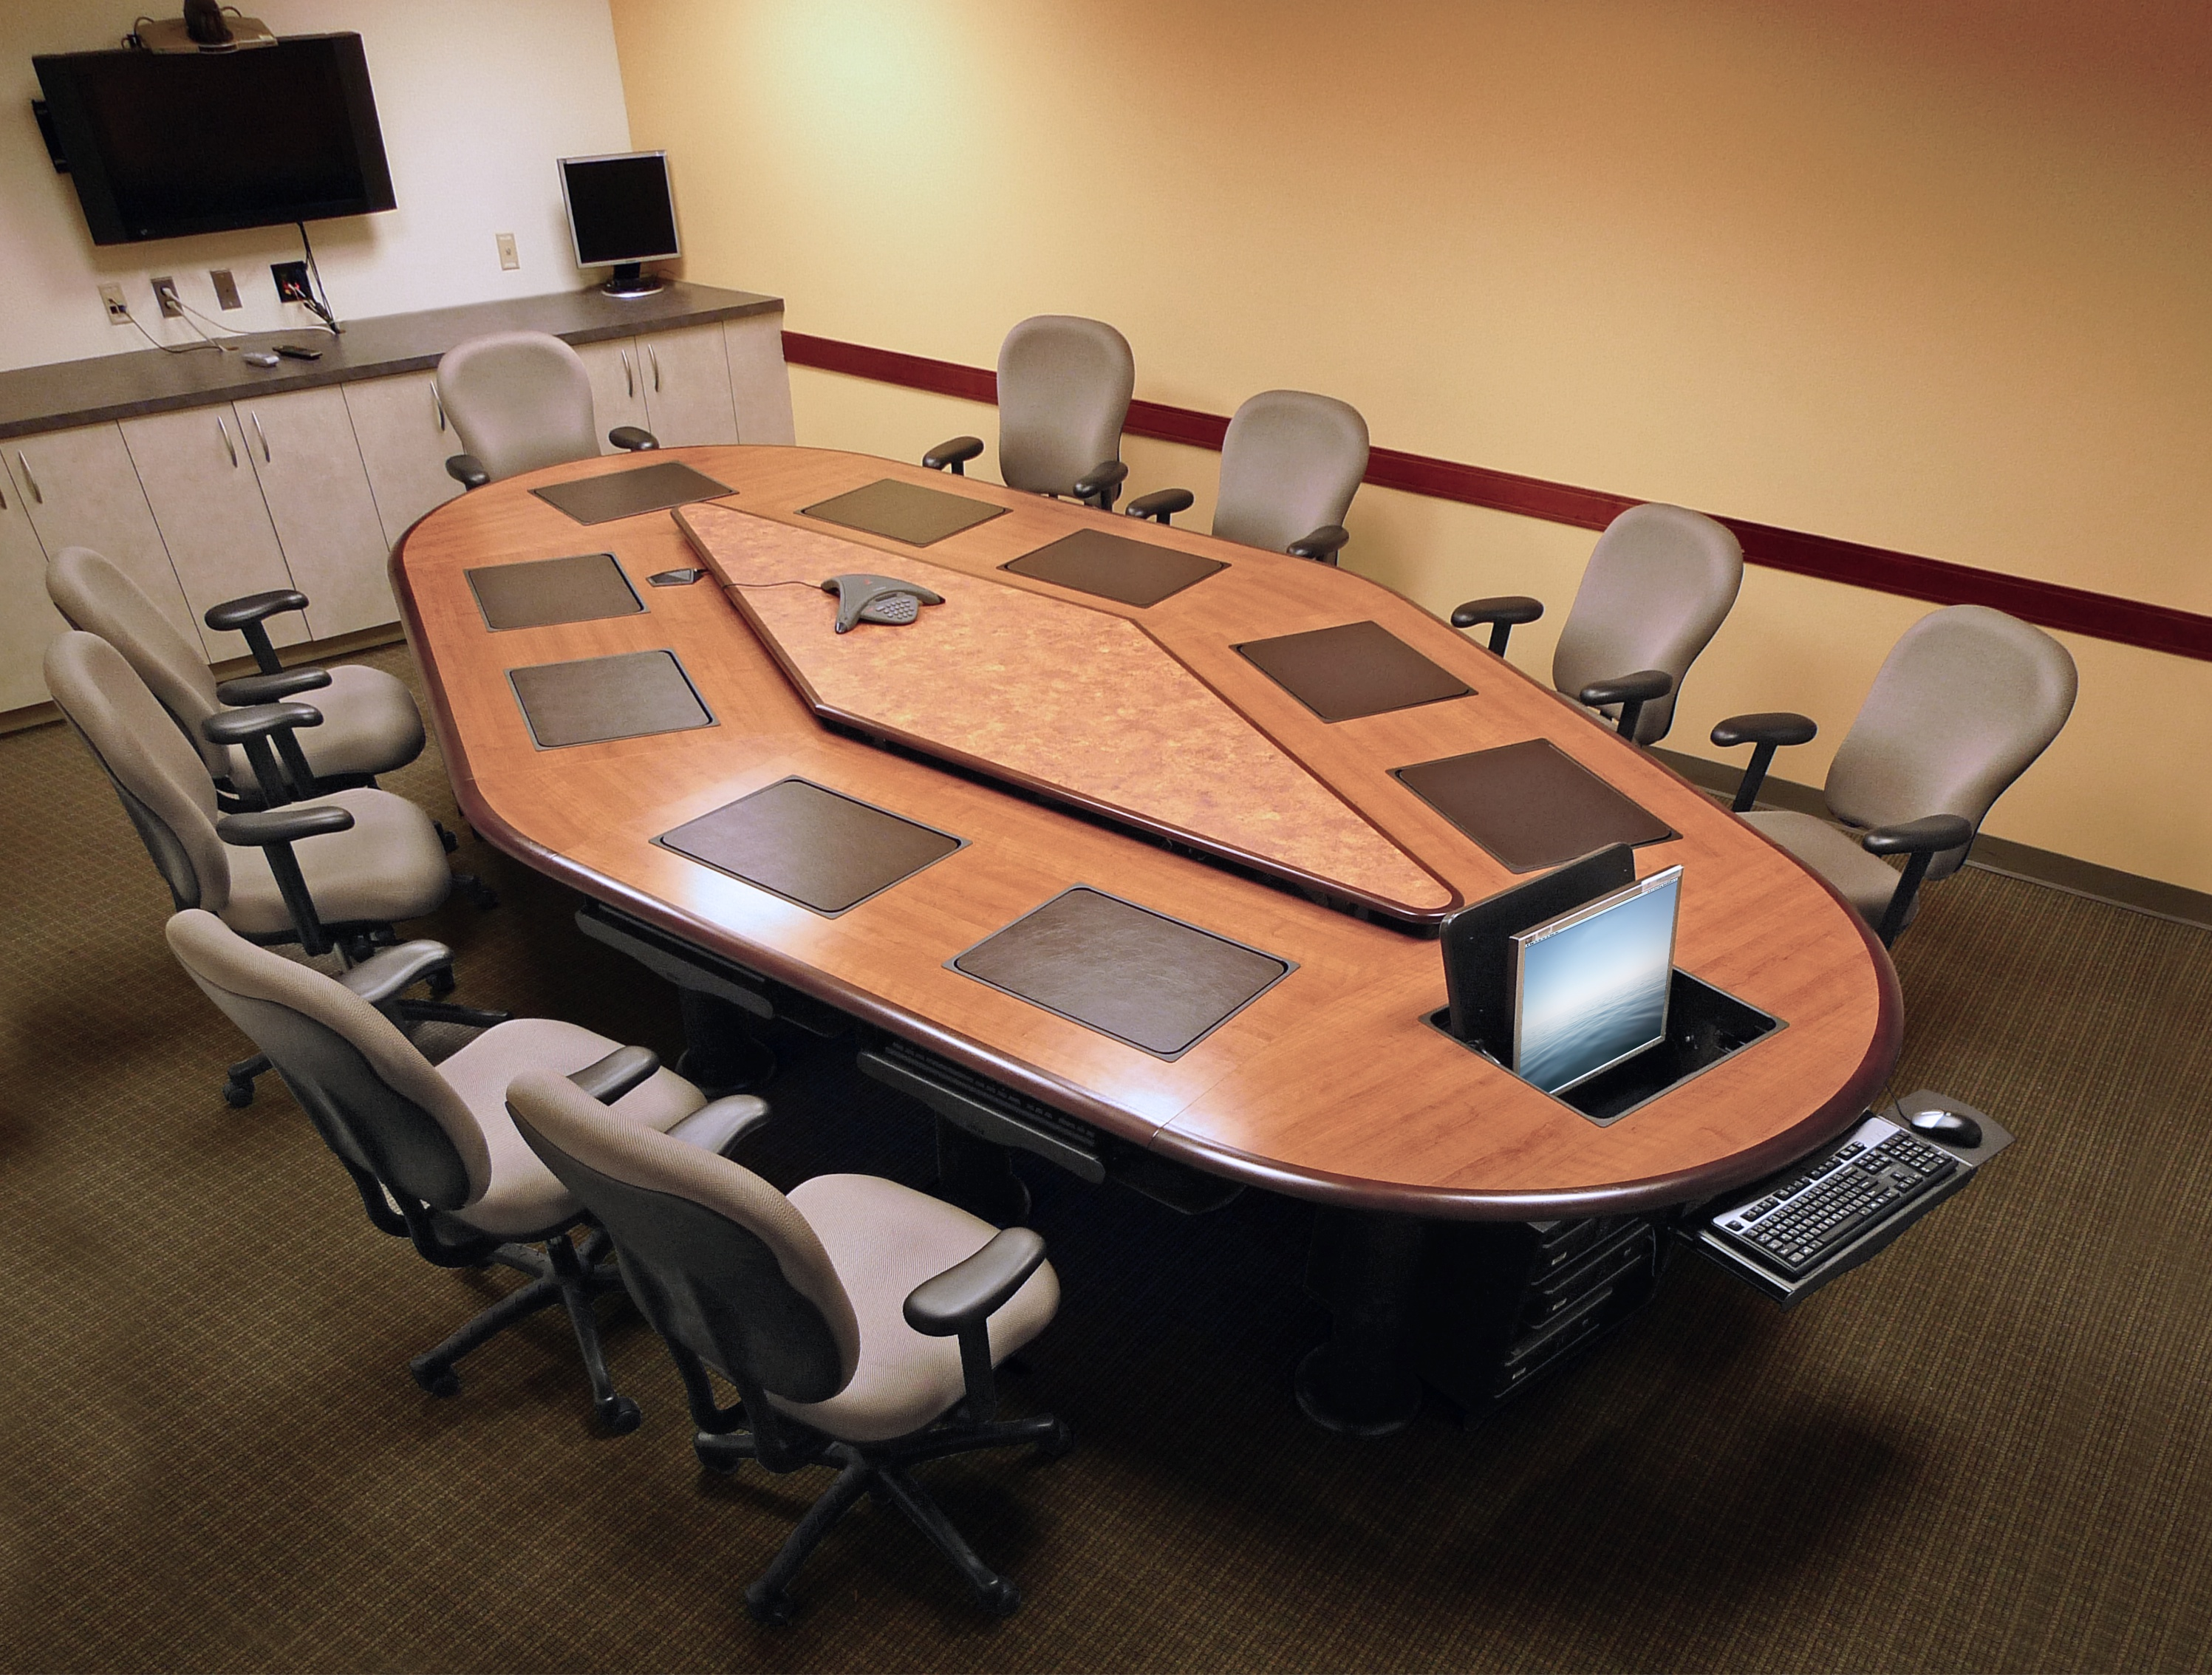 State Department Upgrades To Iconference Computer Table